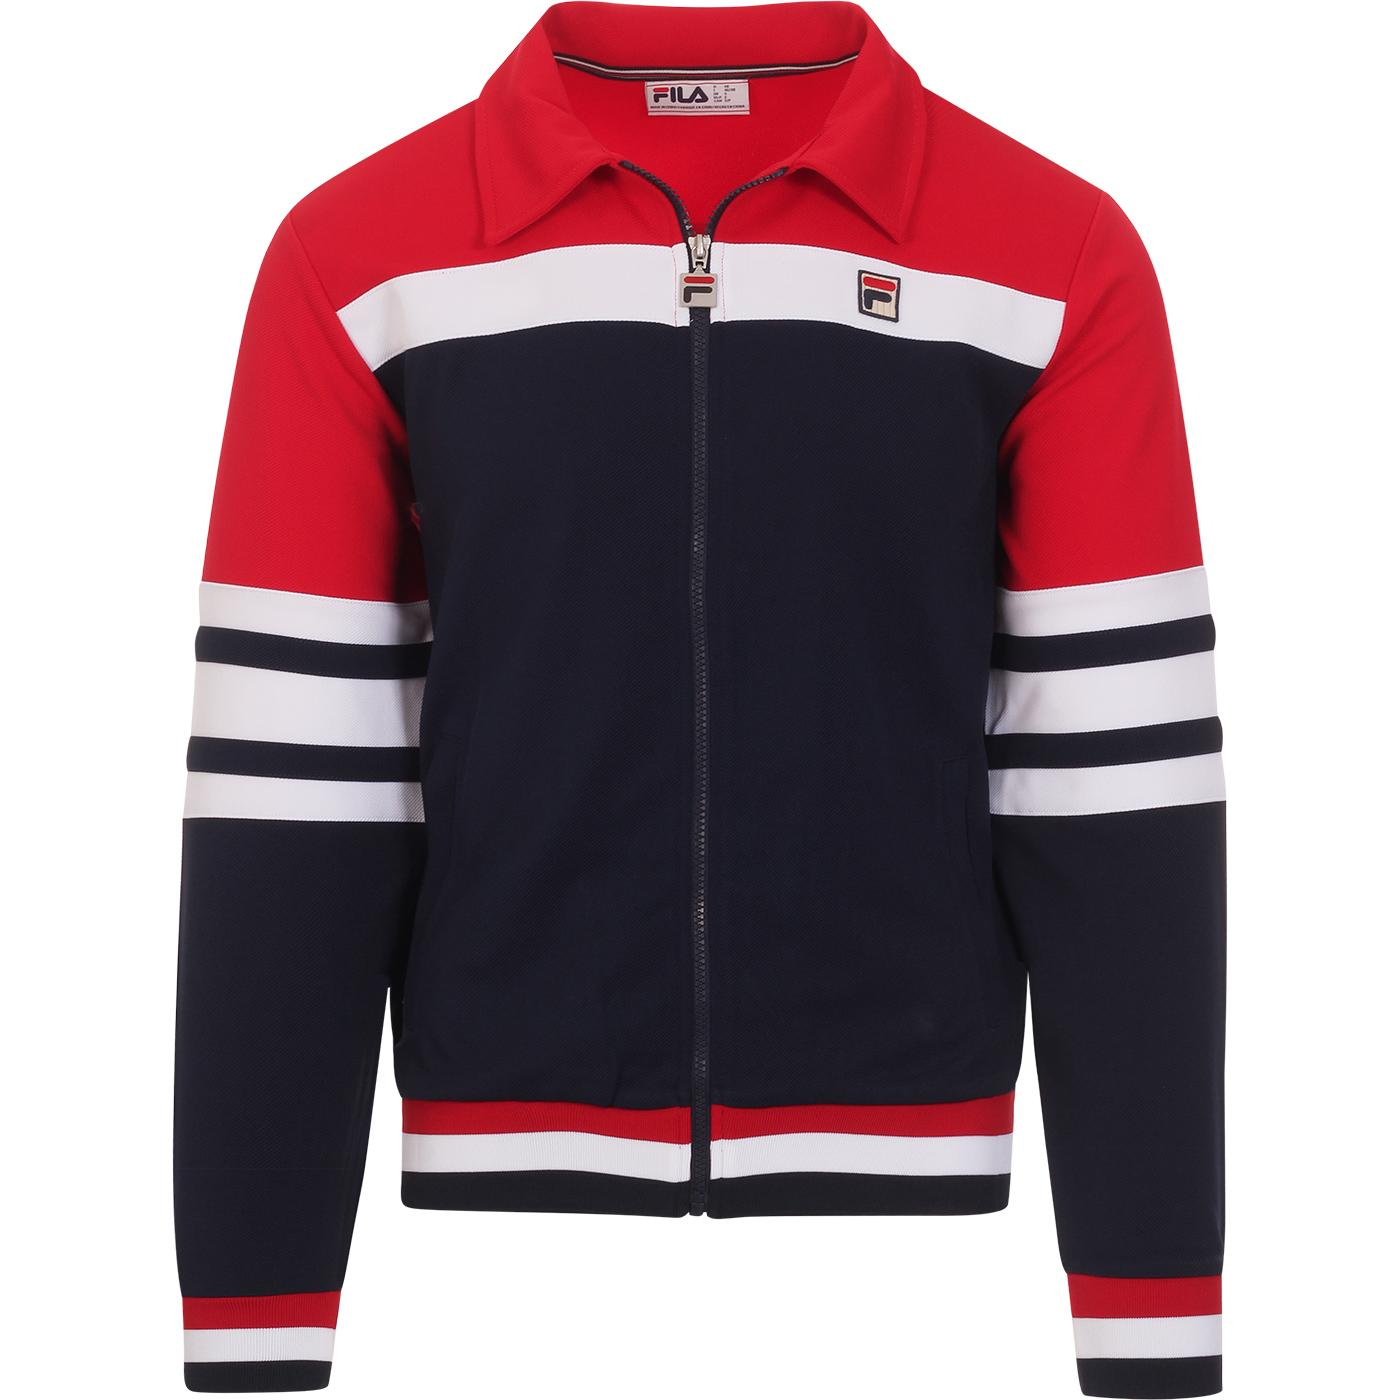 Courto 2 FILA VINTAGE Retro Collared Track Top CR